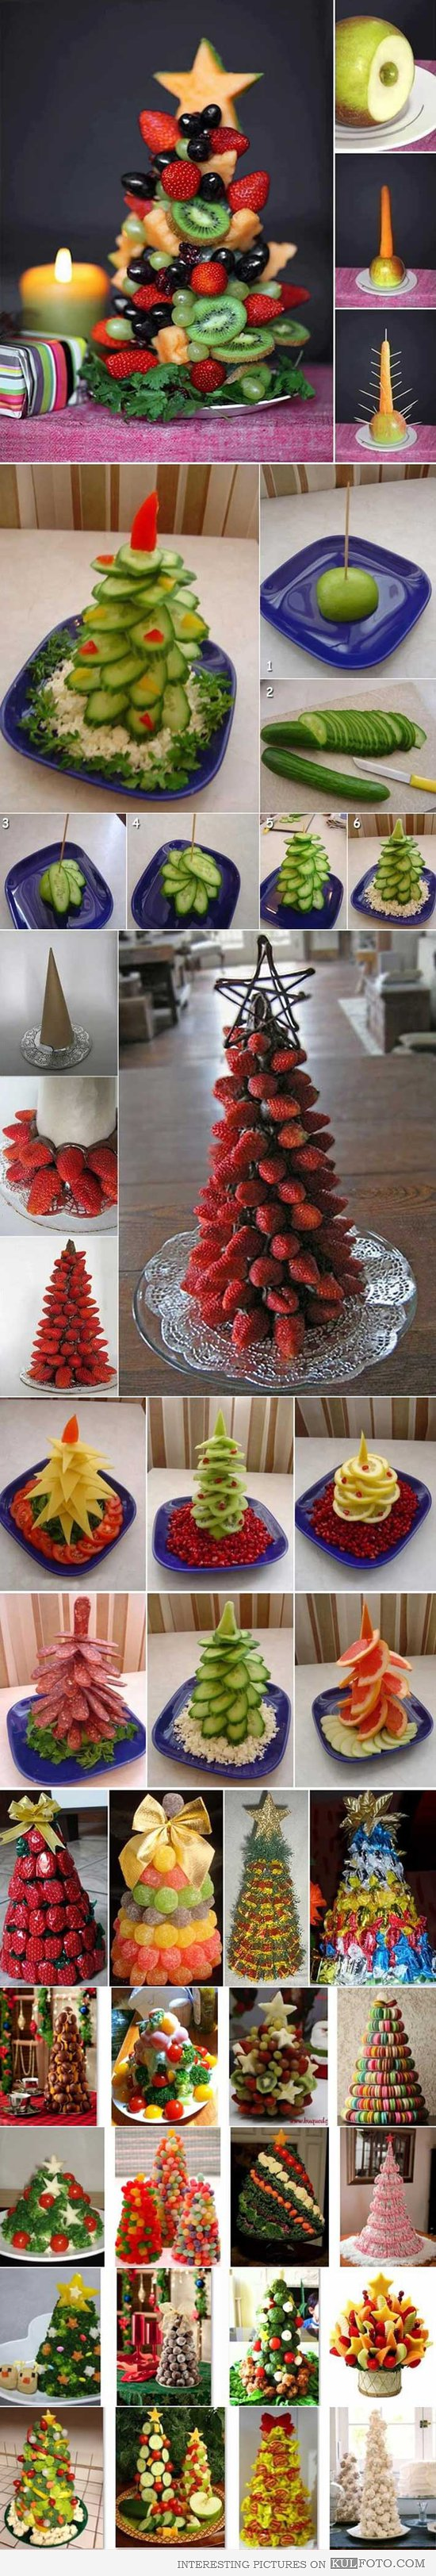 Food Christmas trees